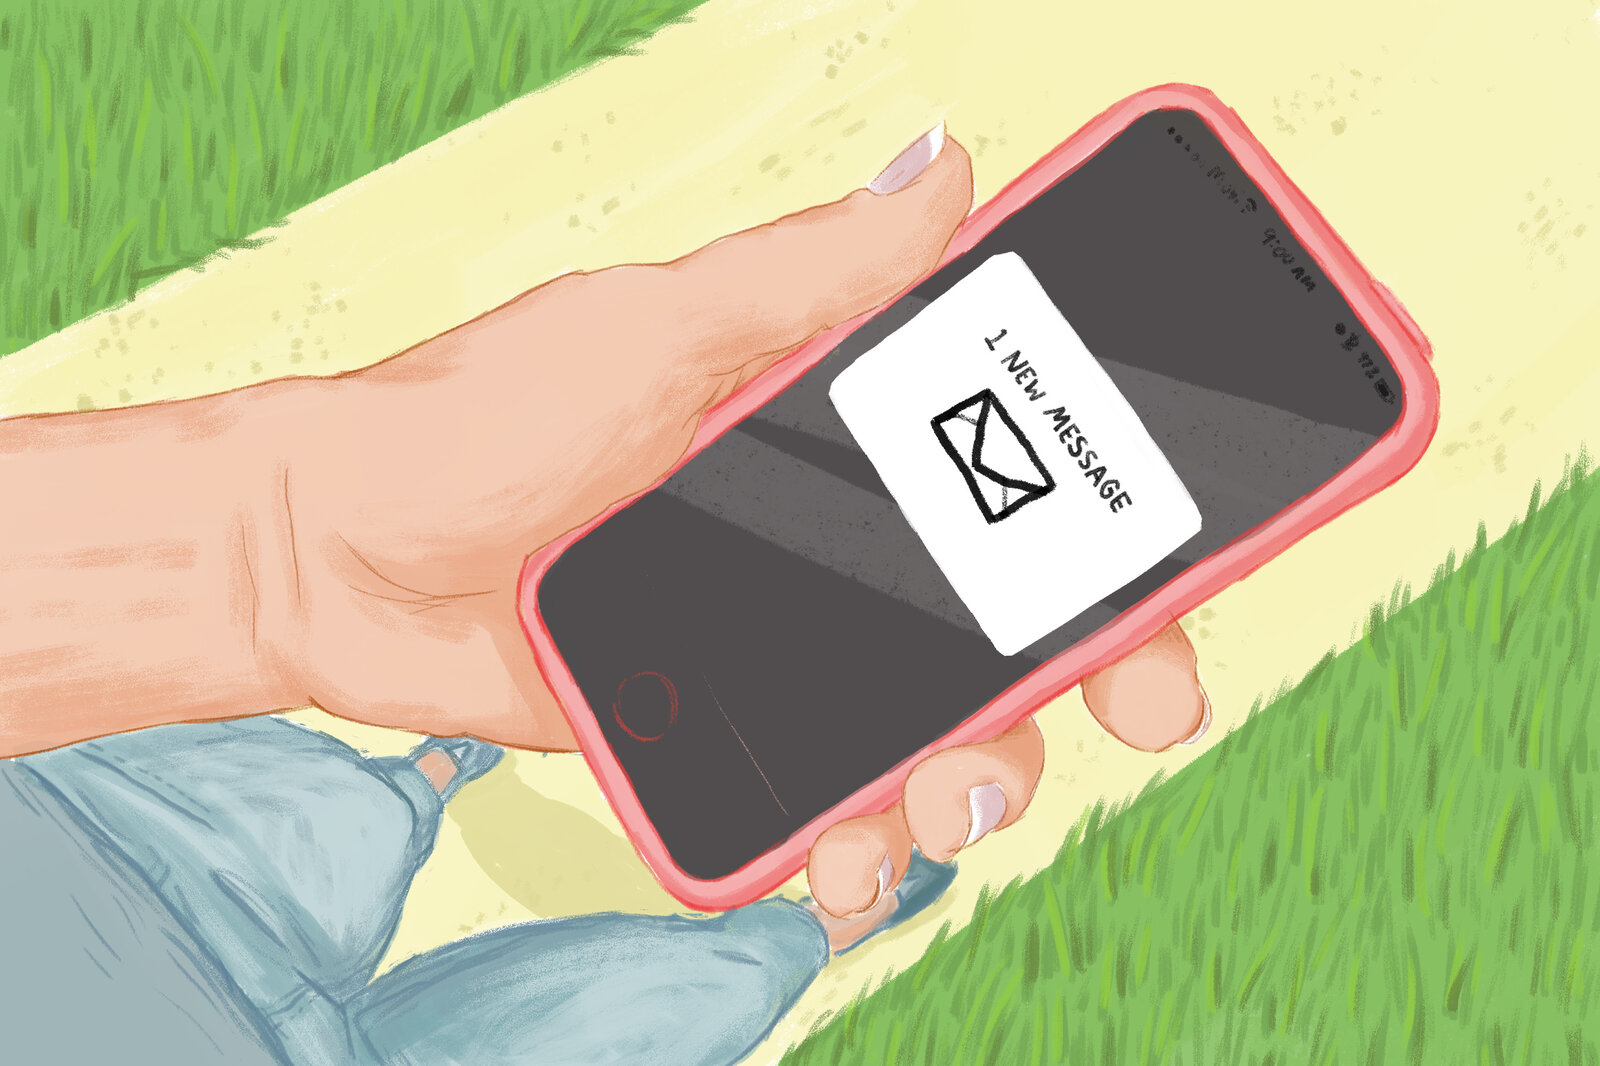 College student holding phone out to view text reminder